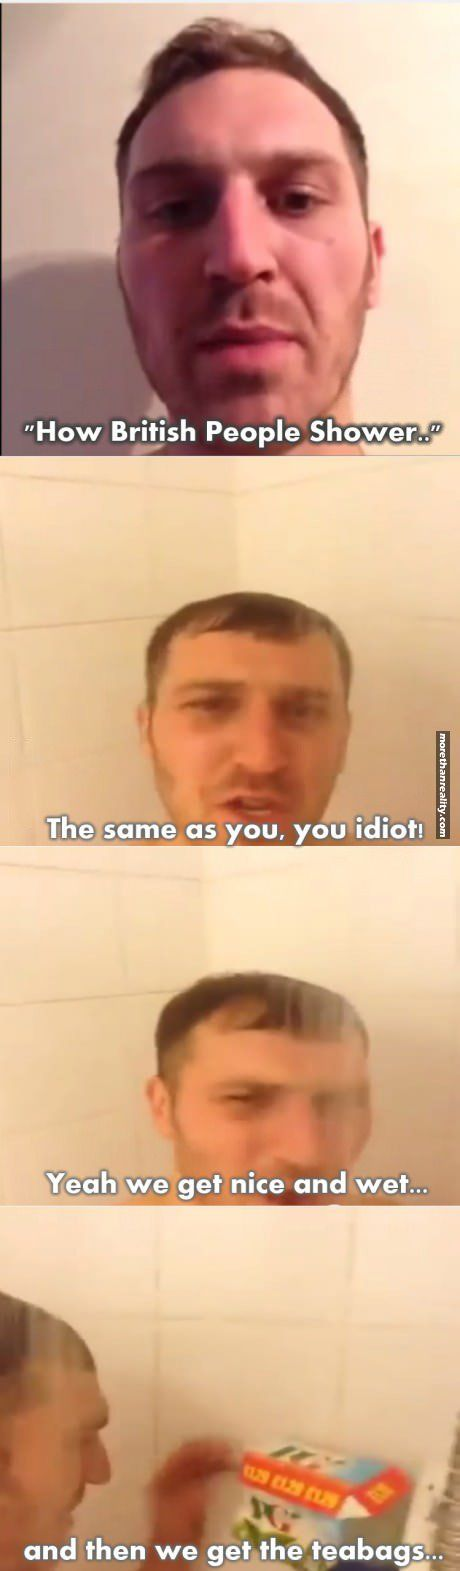 How British people shower